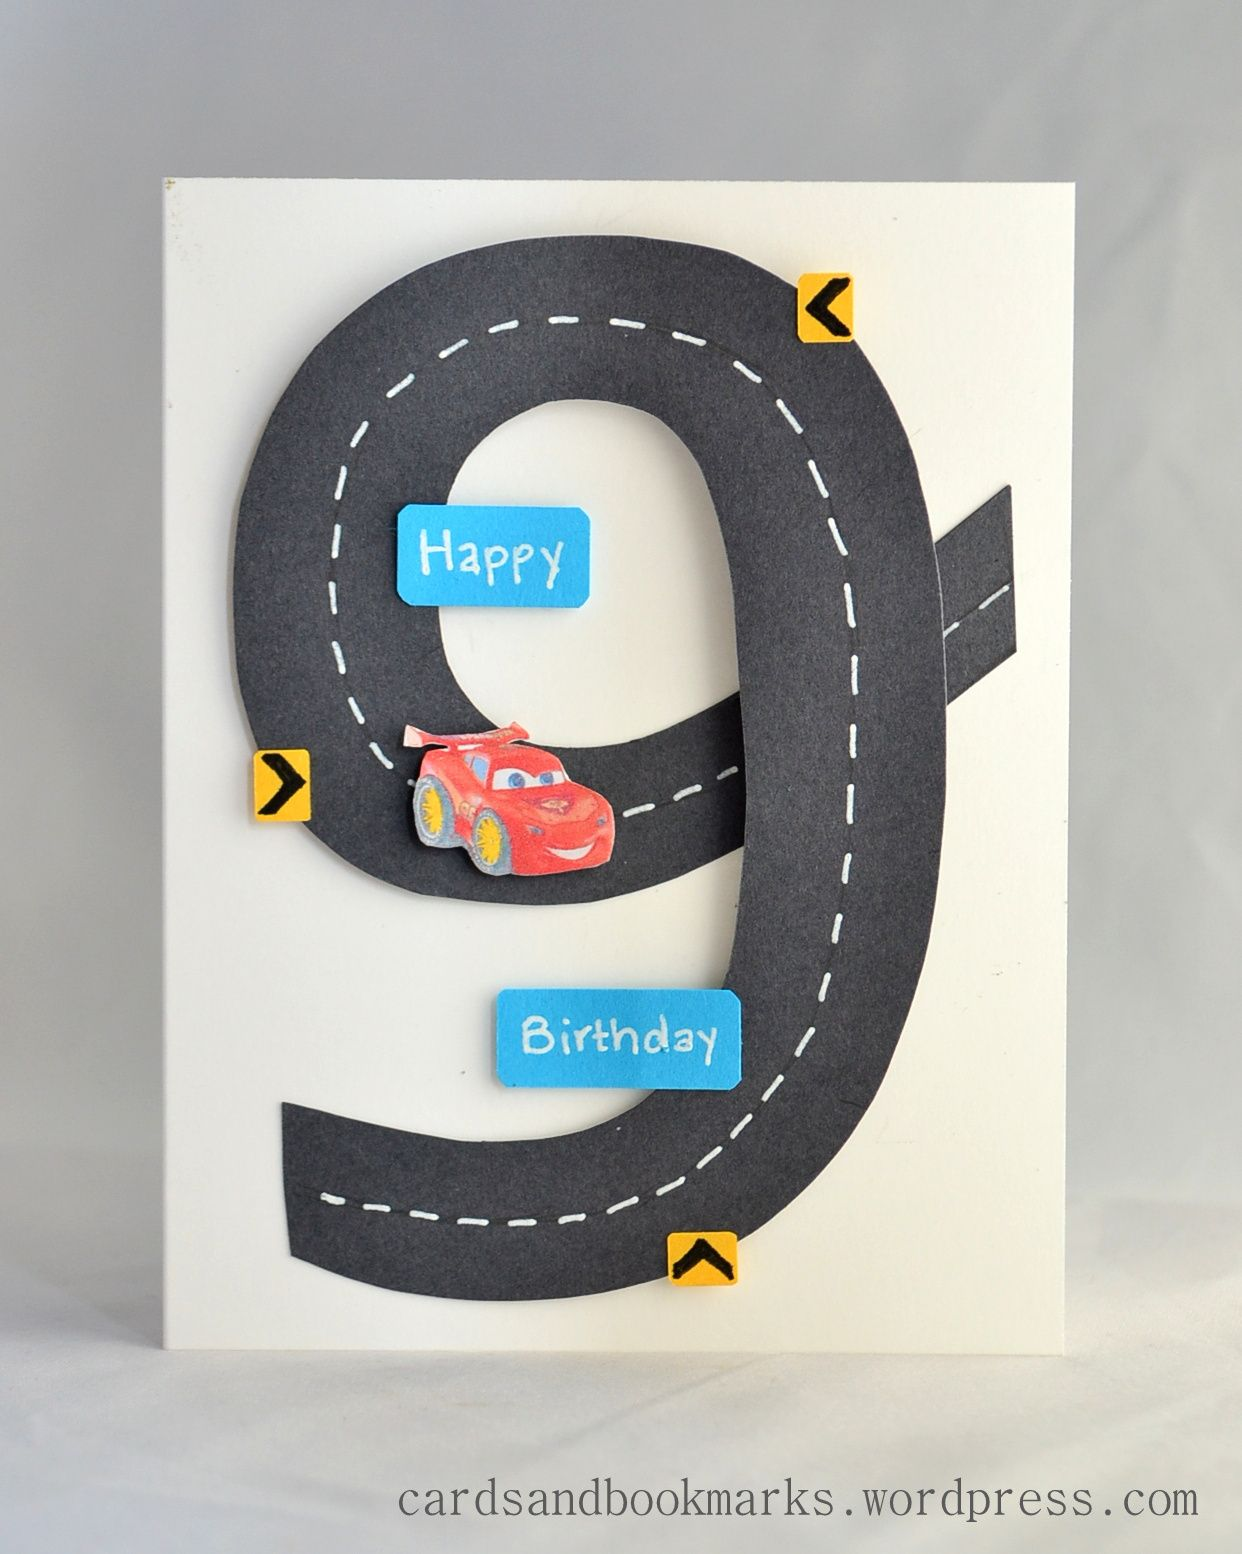 Birthday Card For 8 Year Old Boy : birthday, Create, Paper:, Birthday, Cards,, Paper